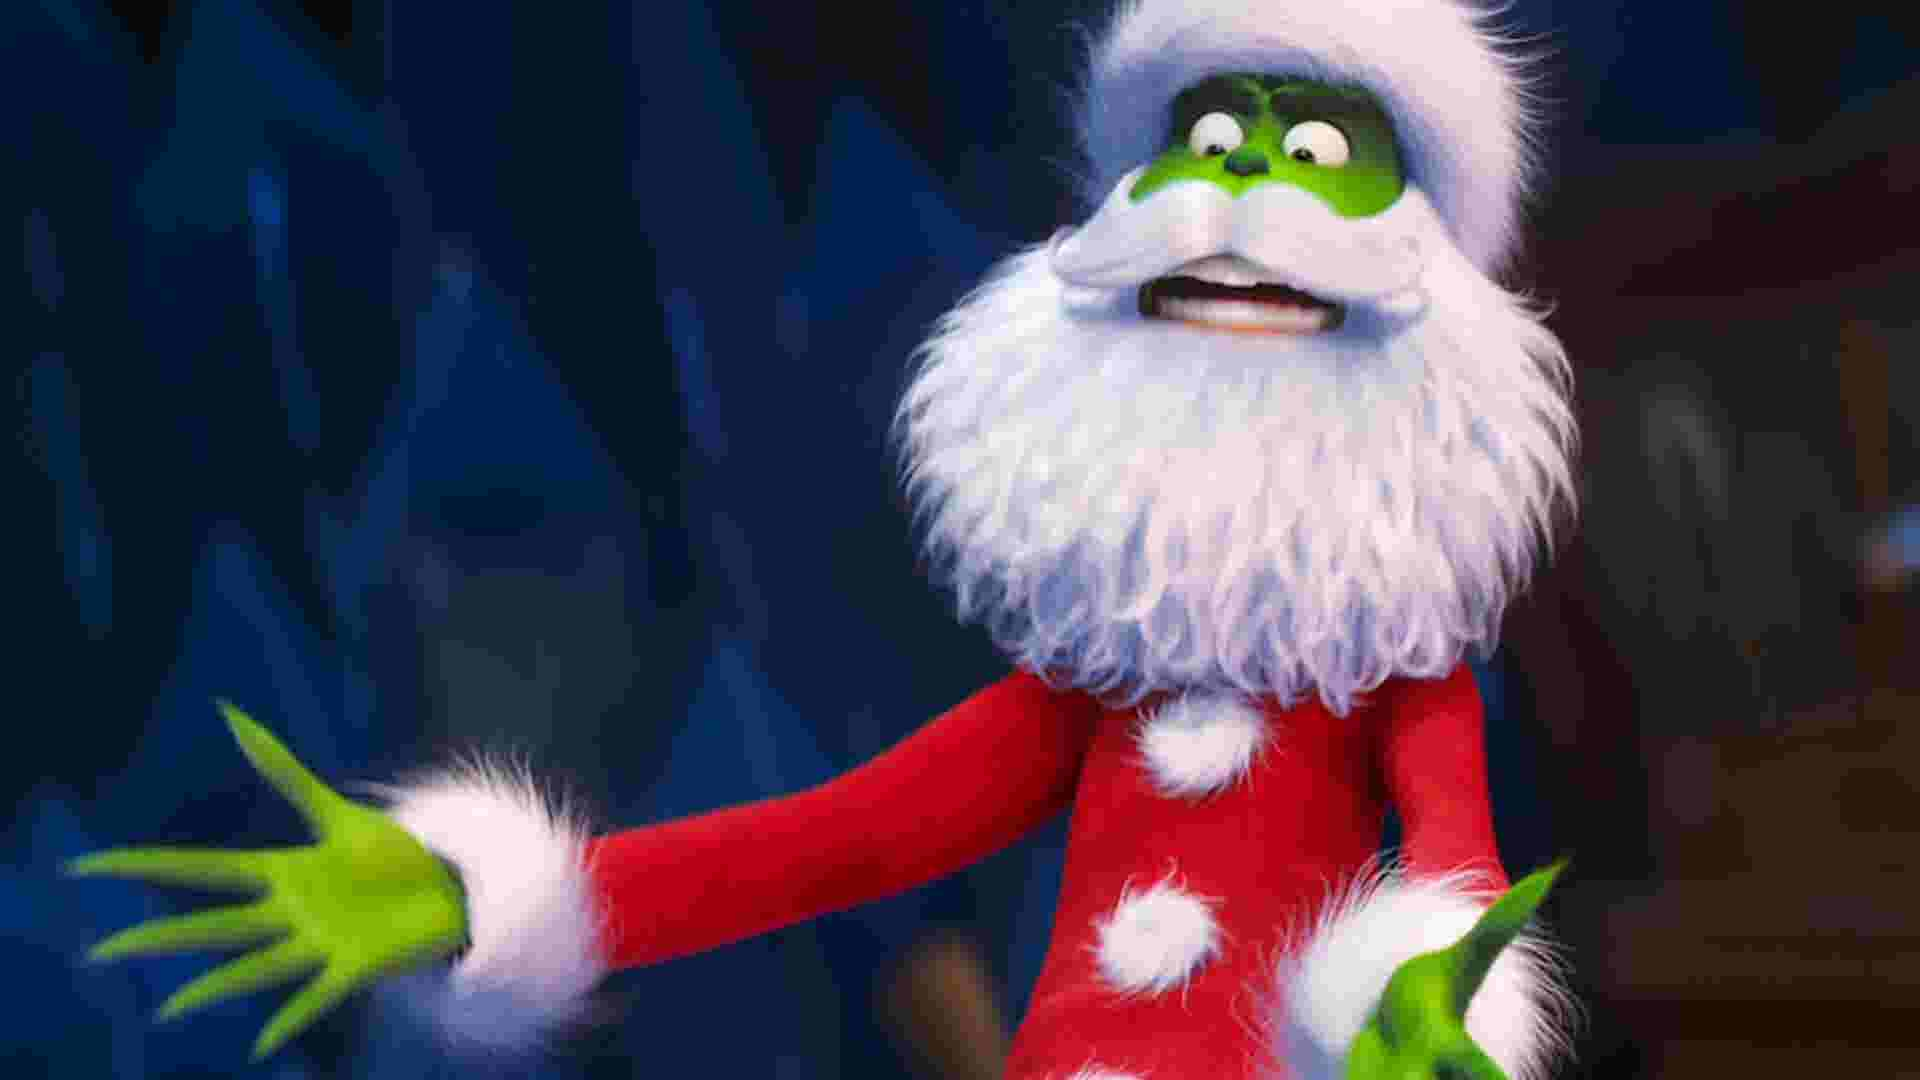 Benedict Cumberbatch Is A Mean One In The Grinch